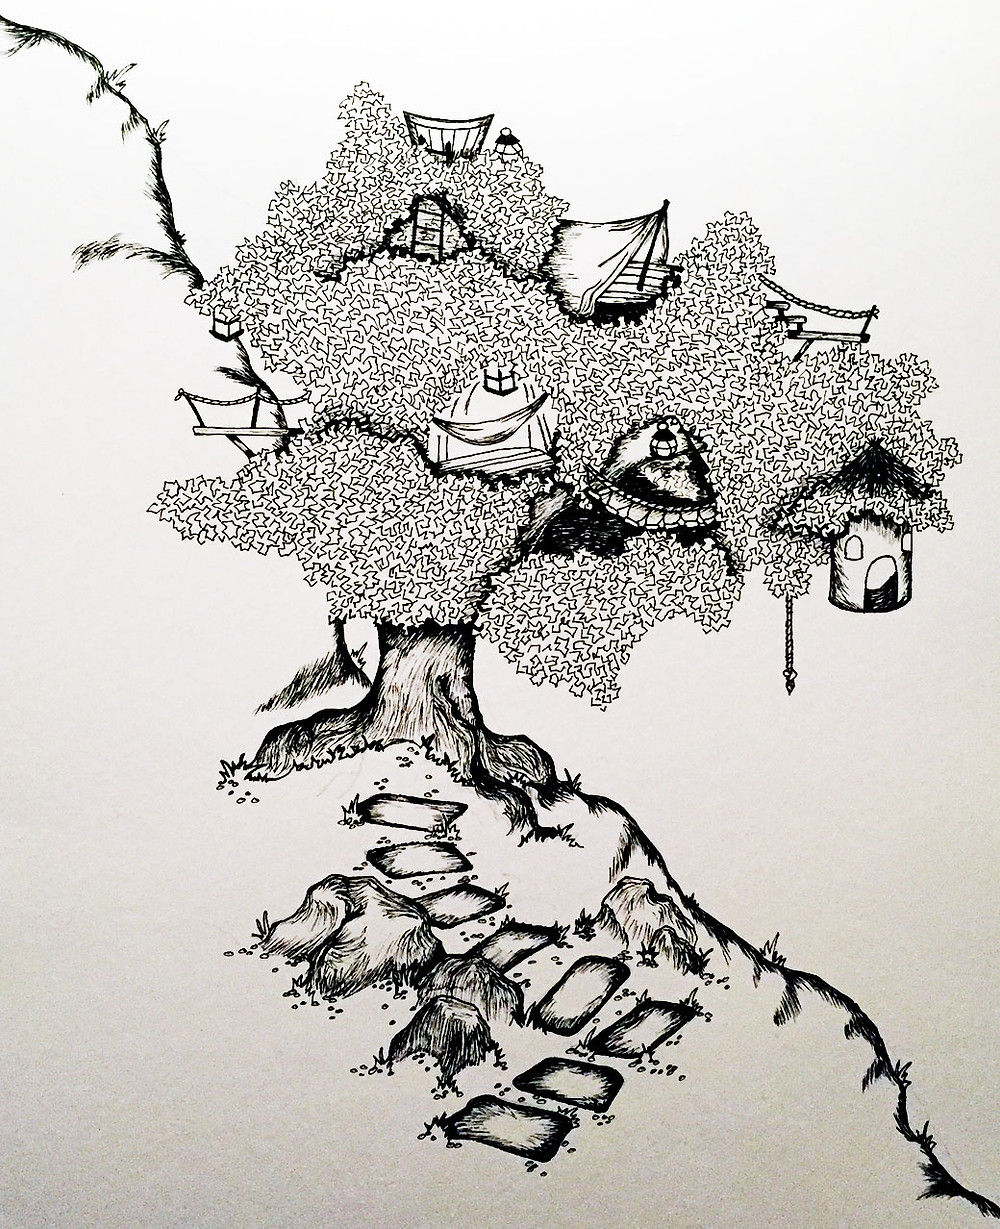 Black and white drawing of a large tree holding several elaborate treehouses.